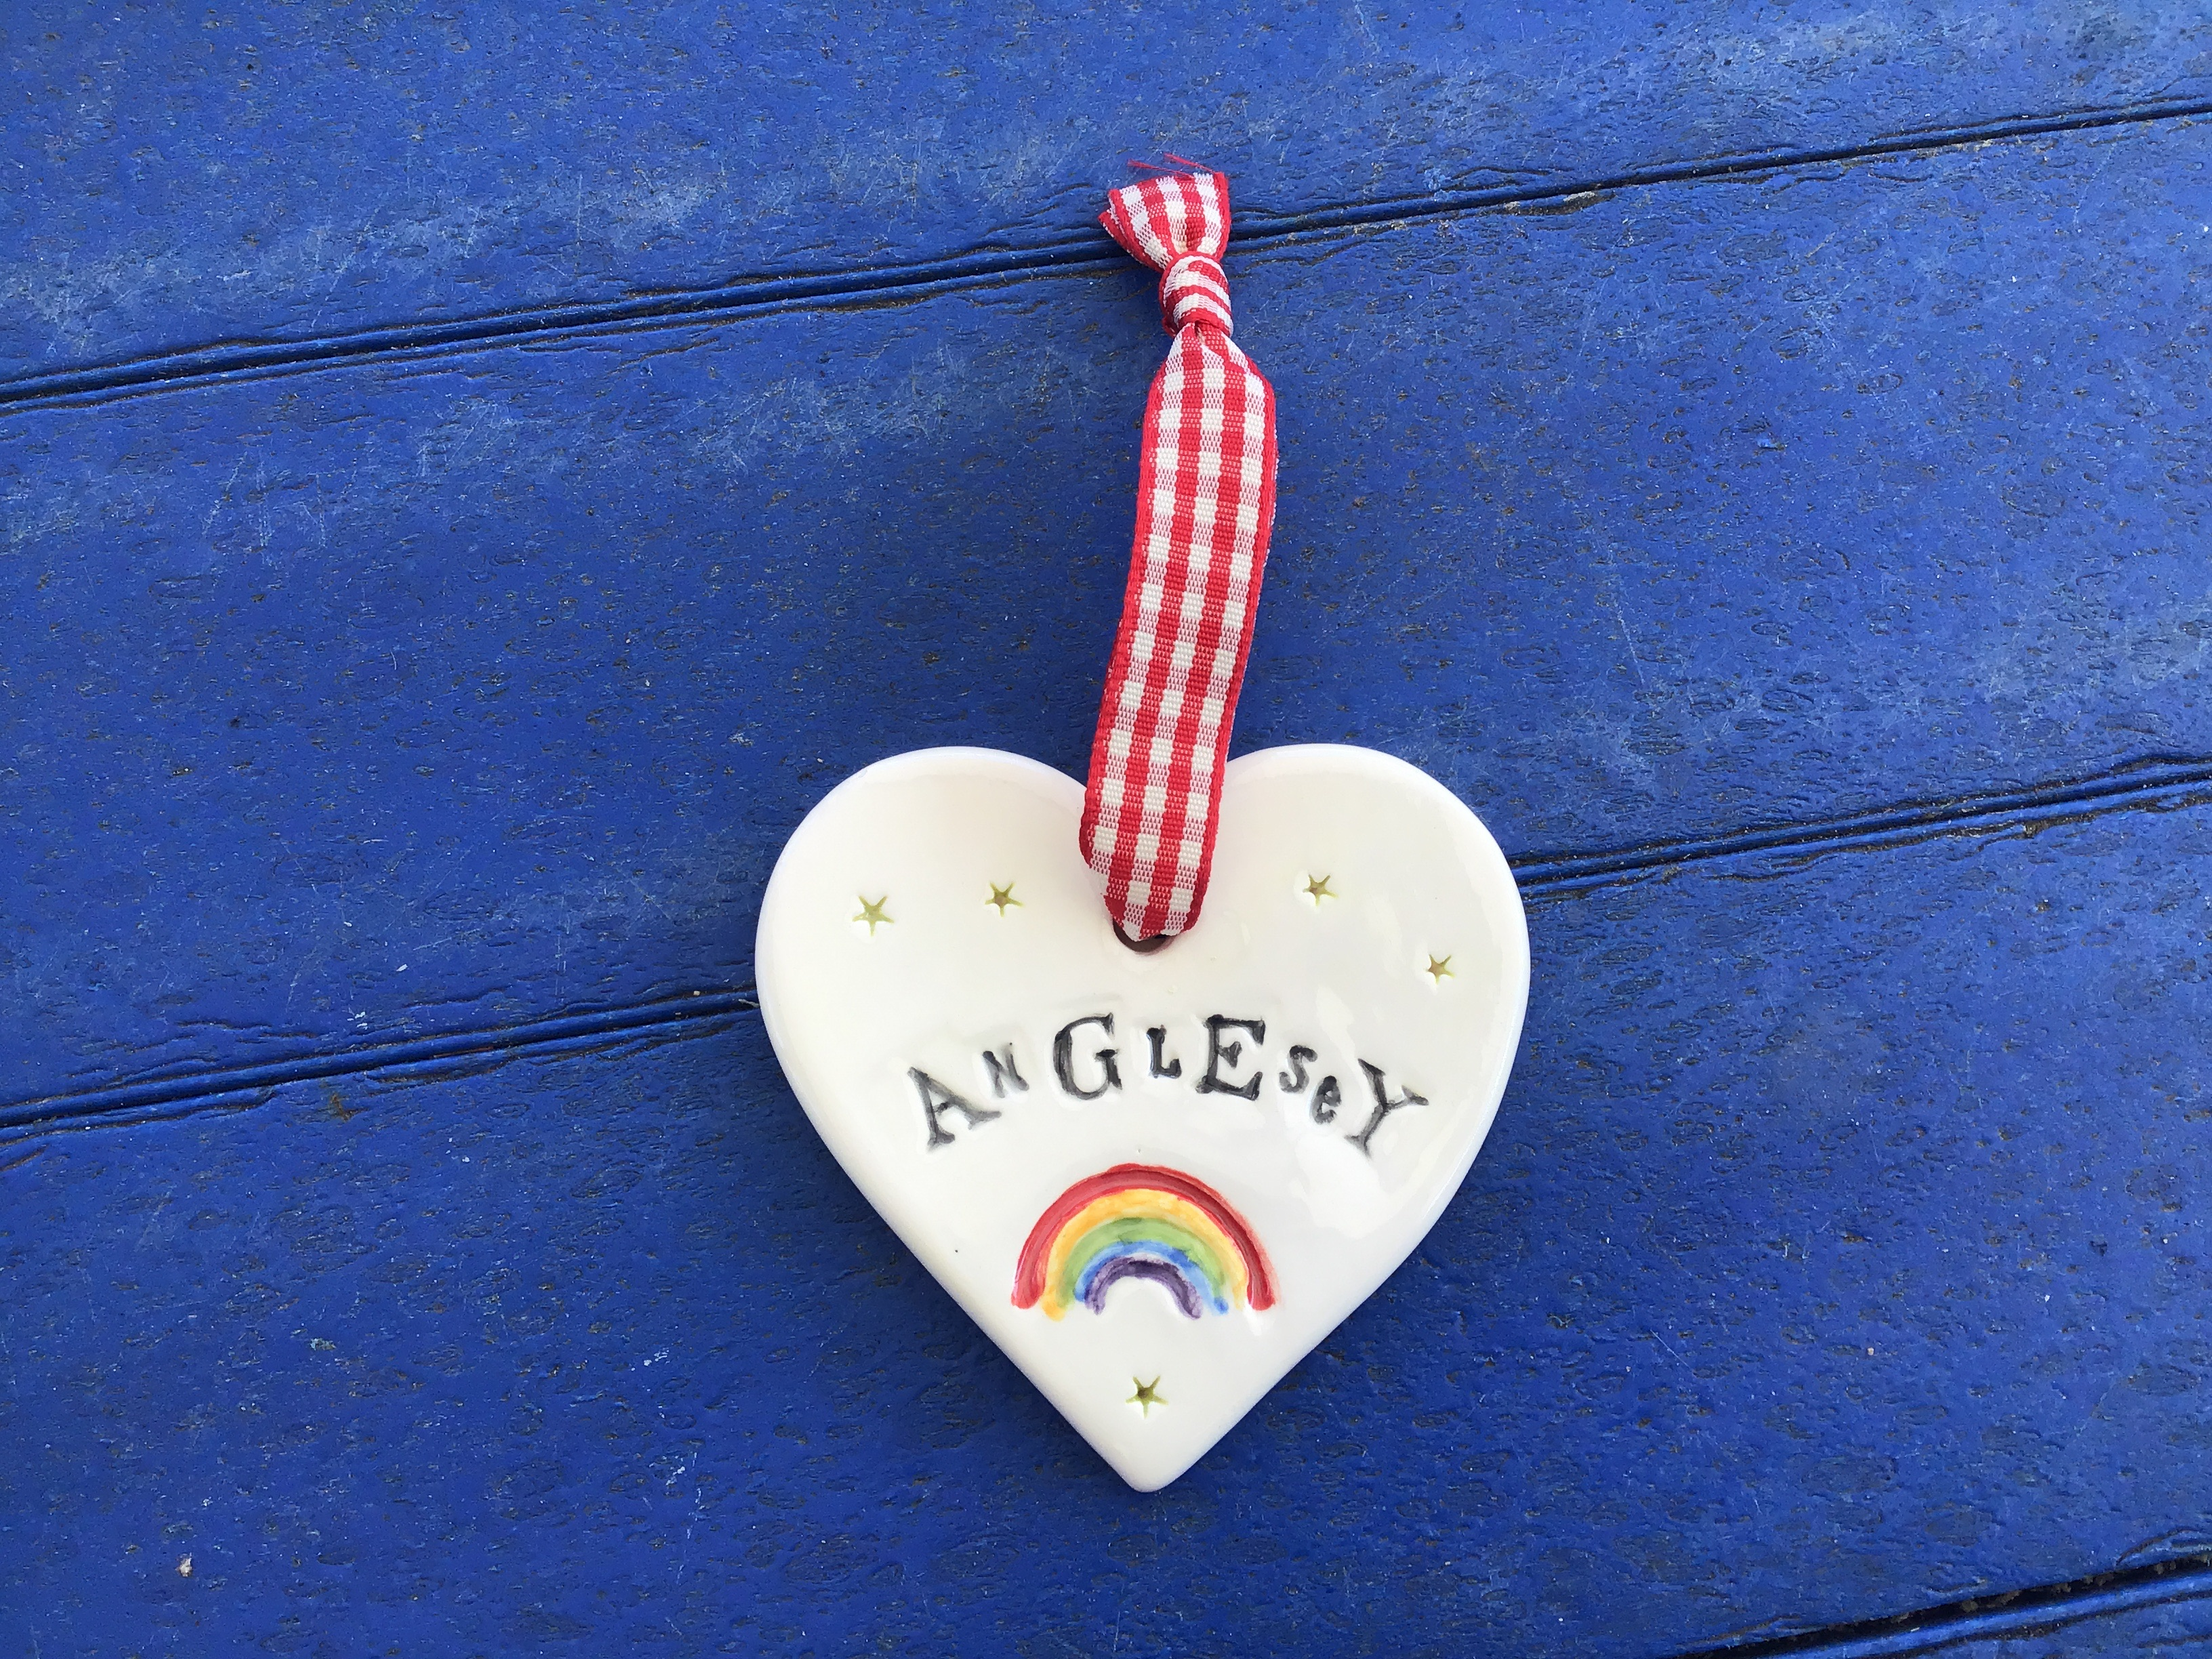 Anglesey ceramic heartb